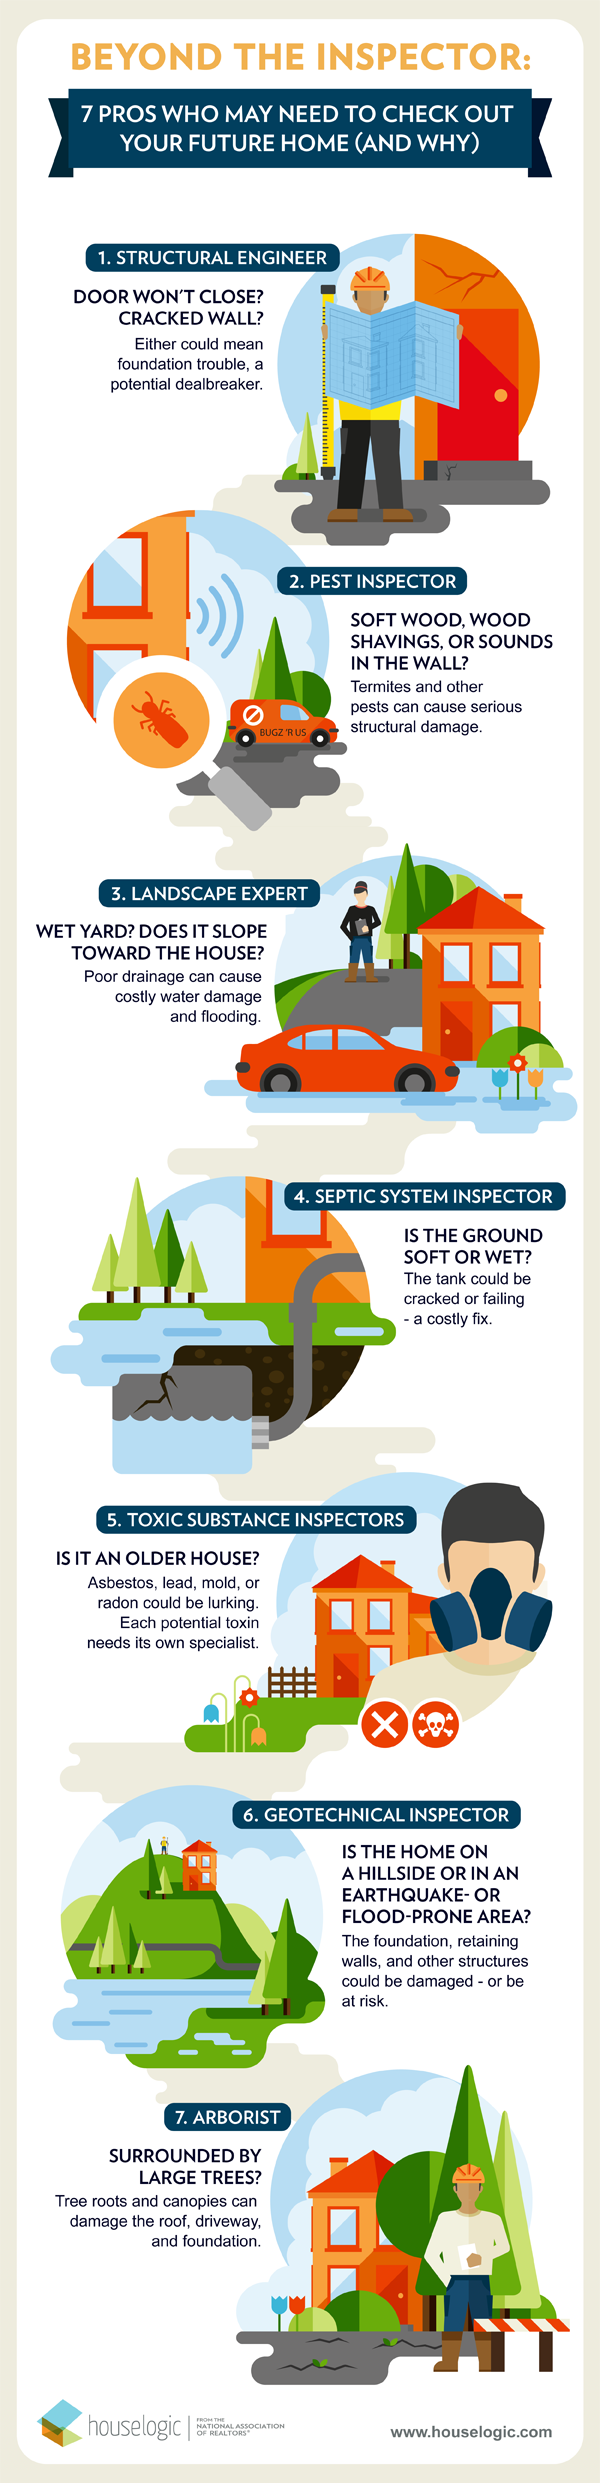 Home Inspections | www nar realtor